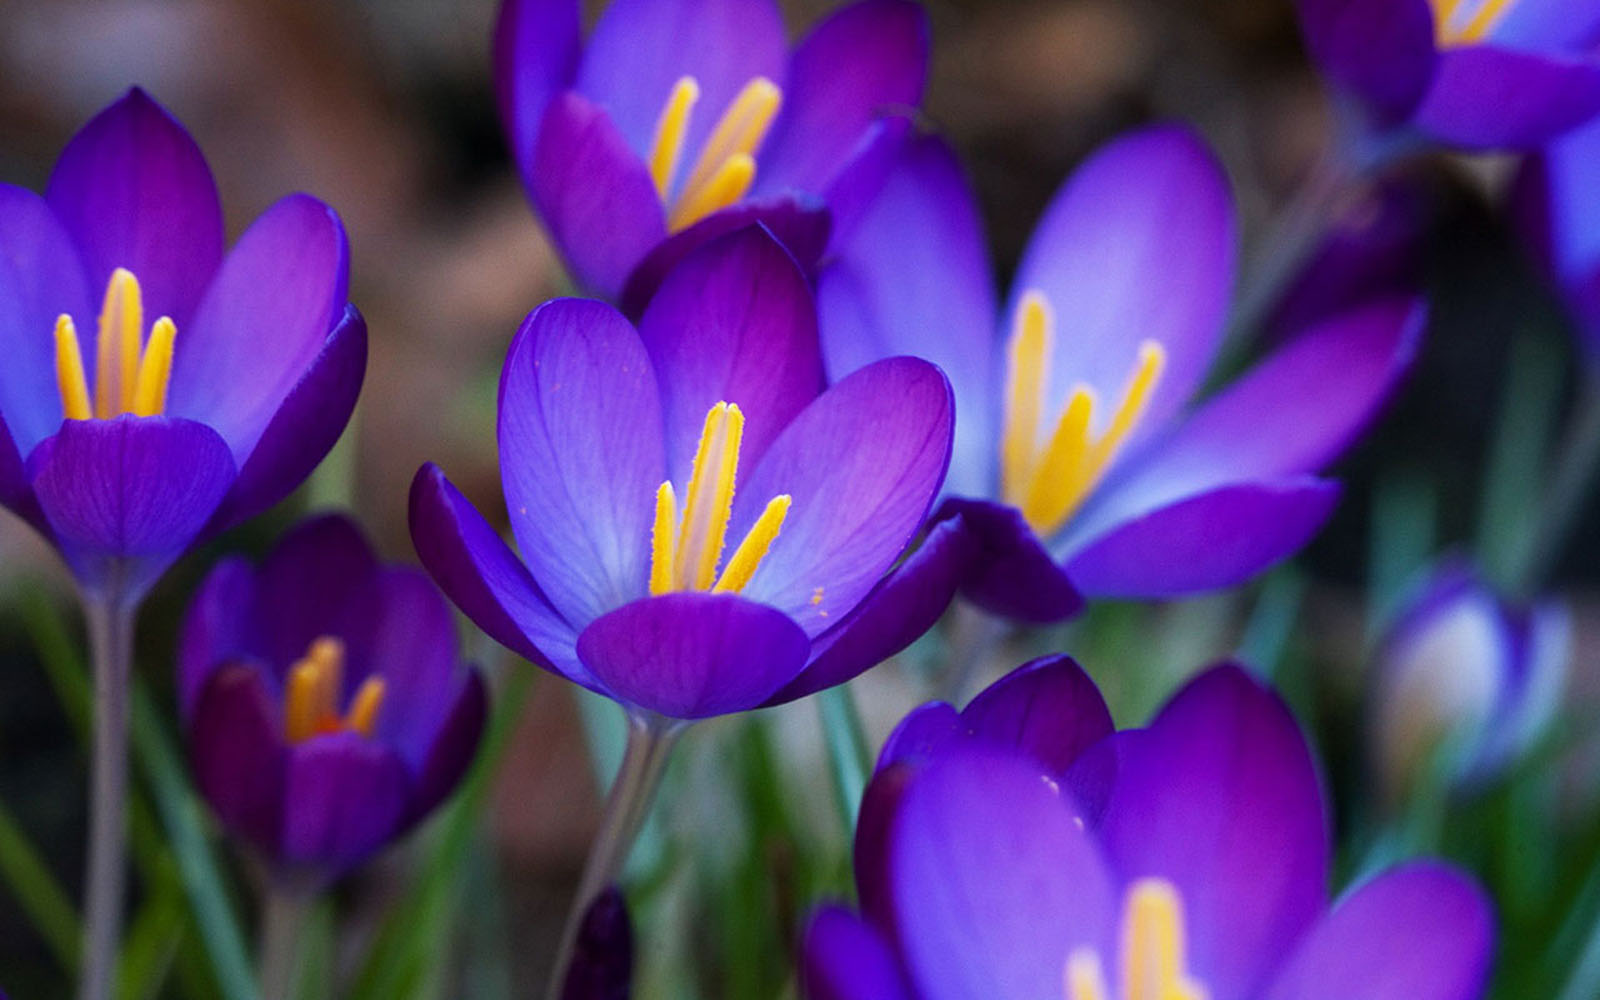 wallpapers Purple Crocus Flowers Wallpapers 1600x1000